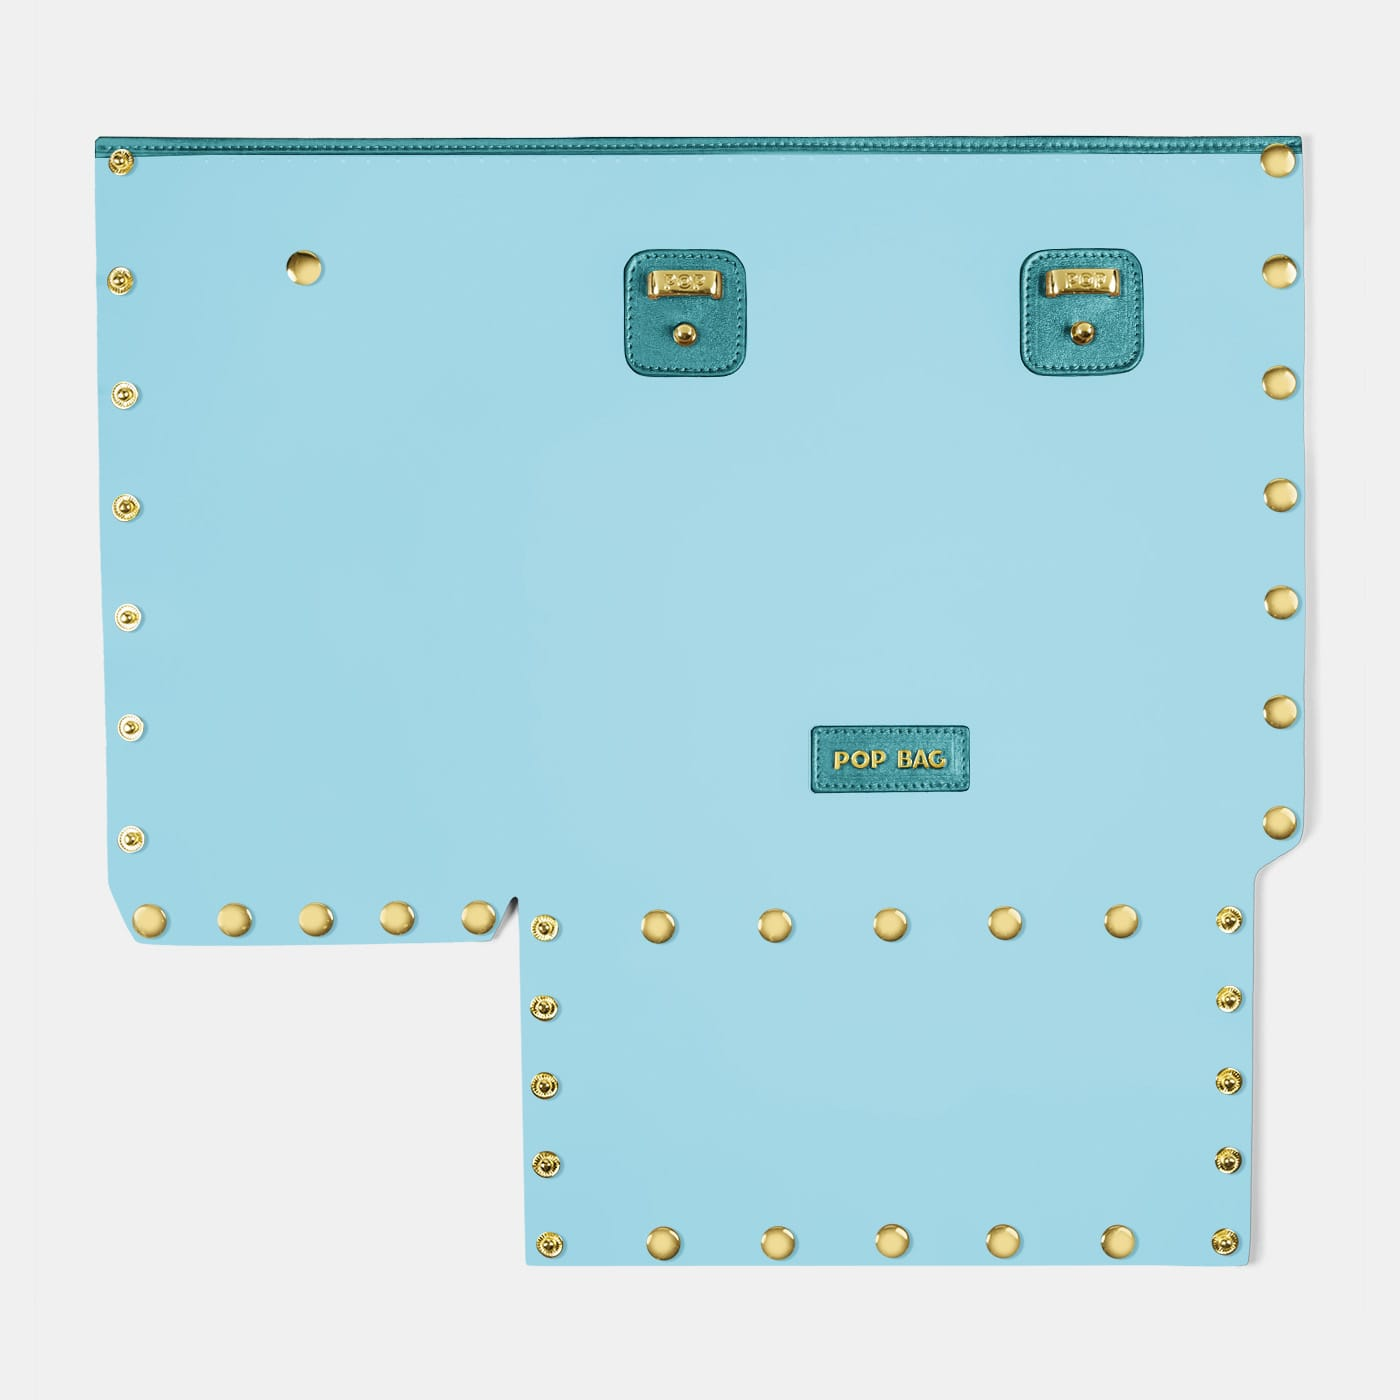 Pop Crystal Front Panel - Light Blue - Medium